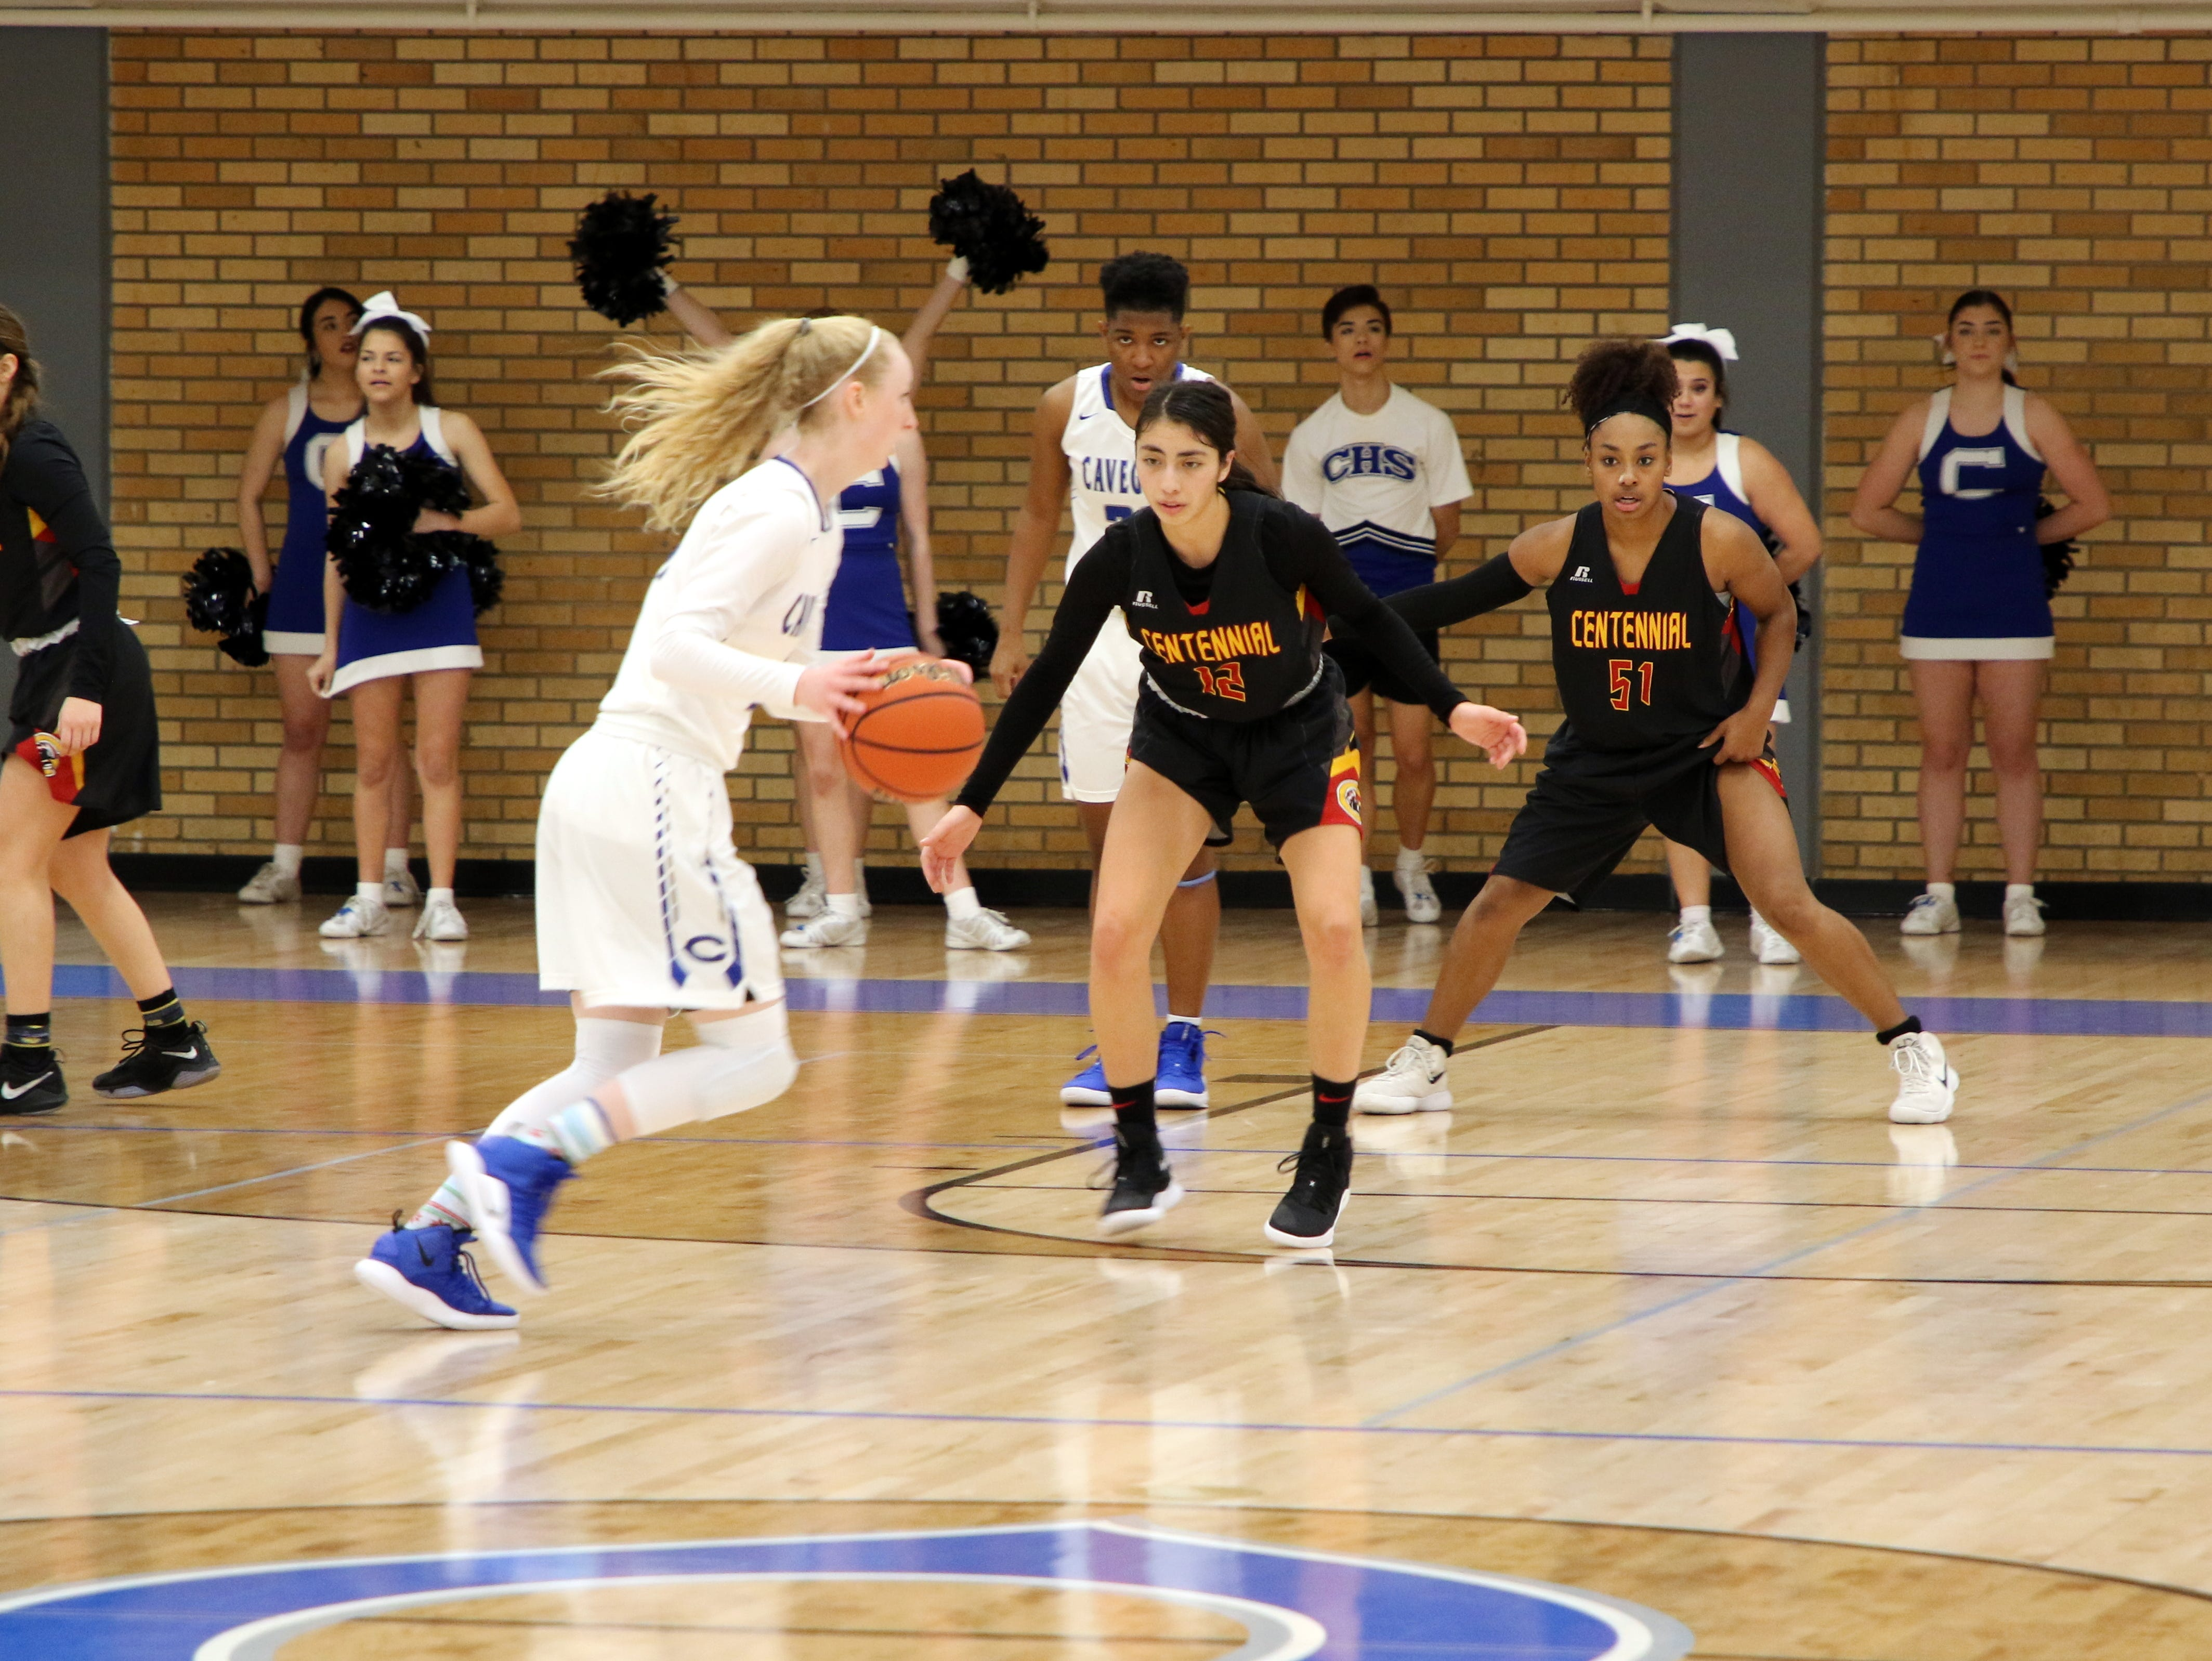 Carsyn Boswell is guarded by Centennial's Jessica Rios in the second half of Saturday's game.